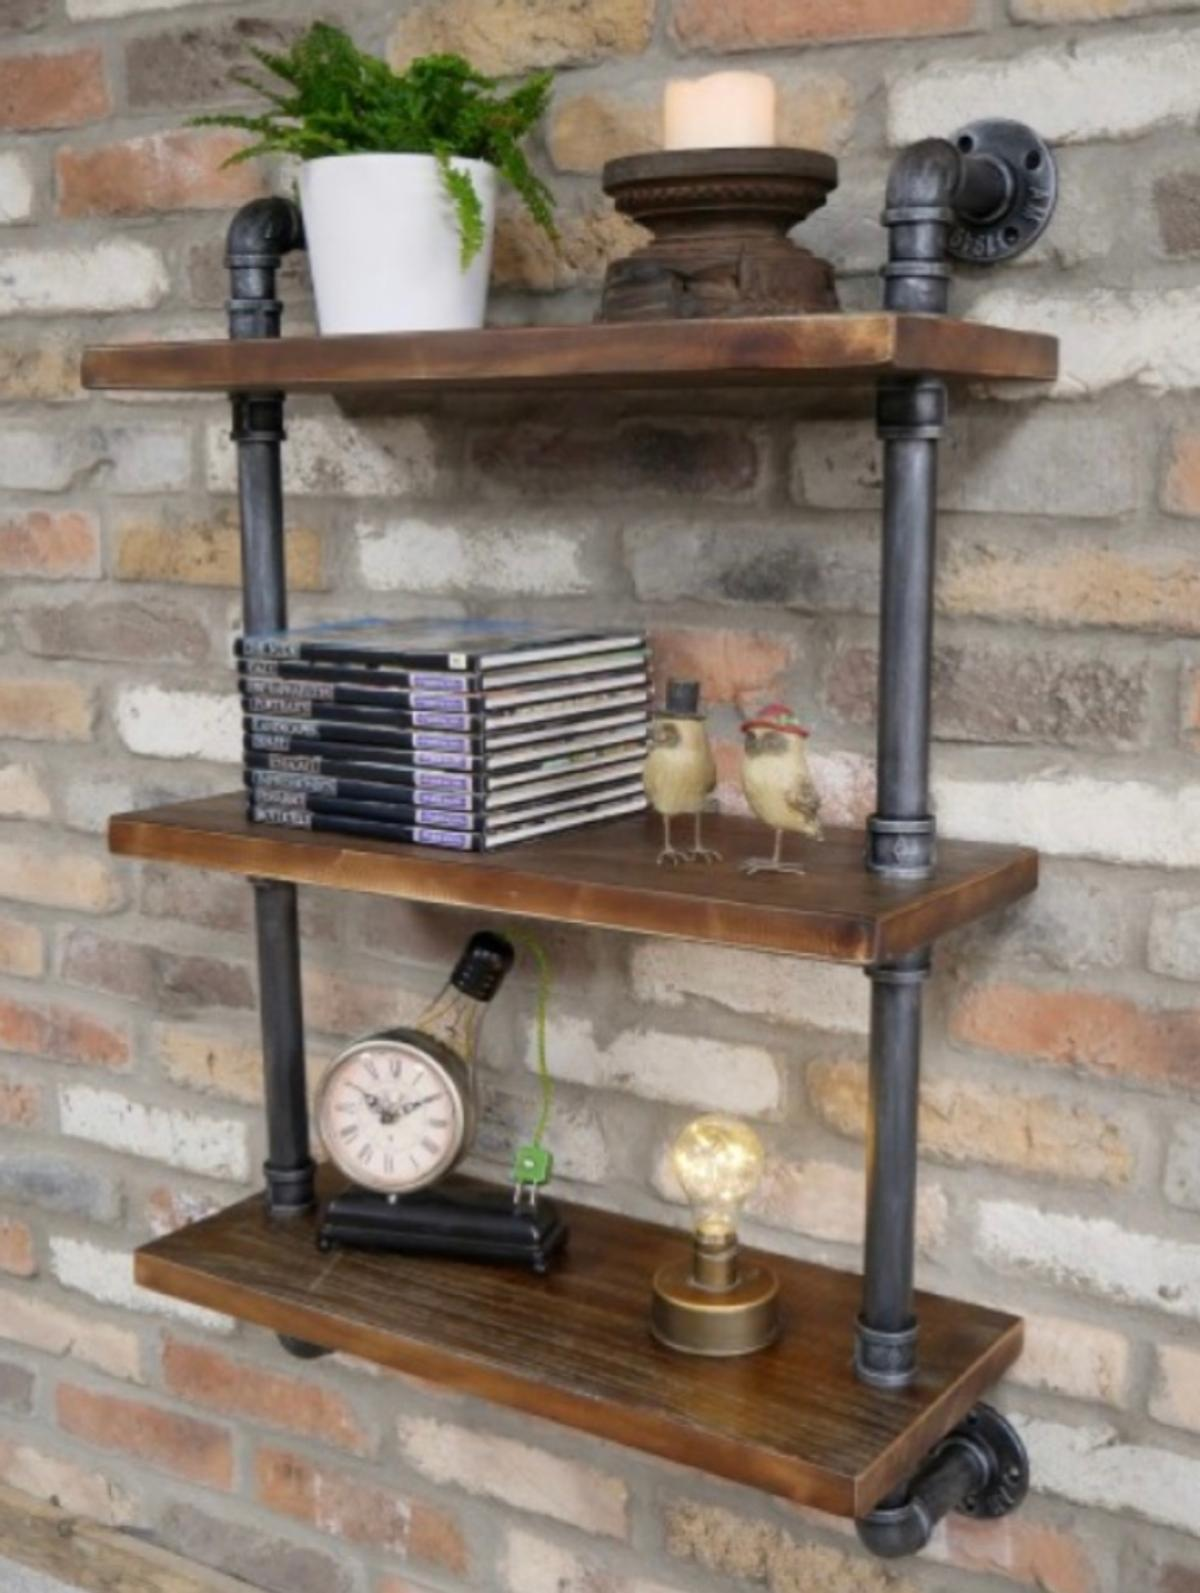 New Industrial Vintage Style Wall Shelf Unit In Doncaster For 90 00 For Sale Shpock